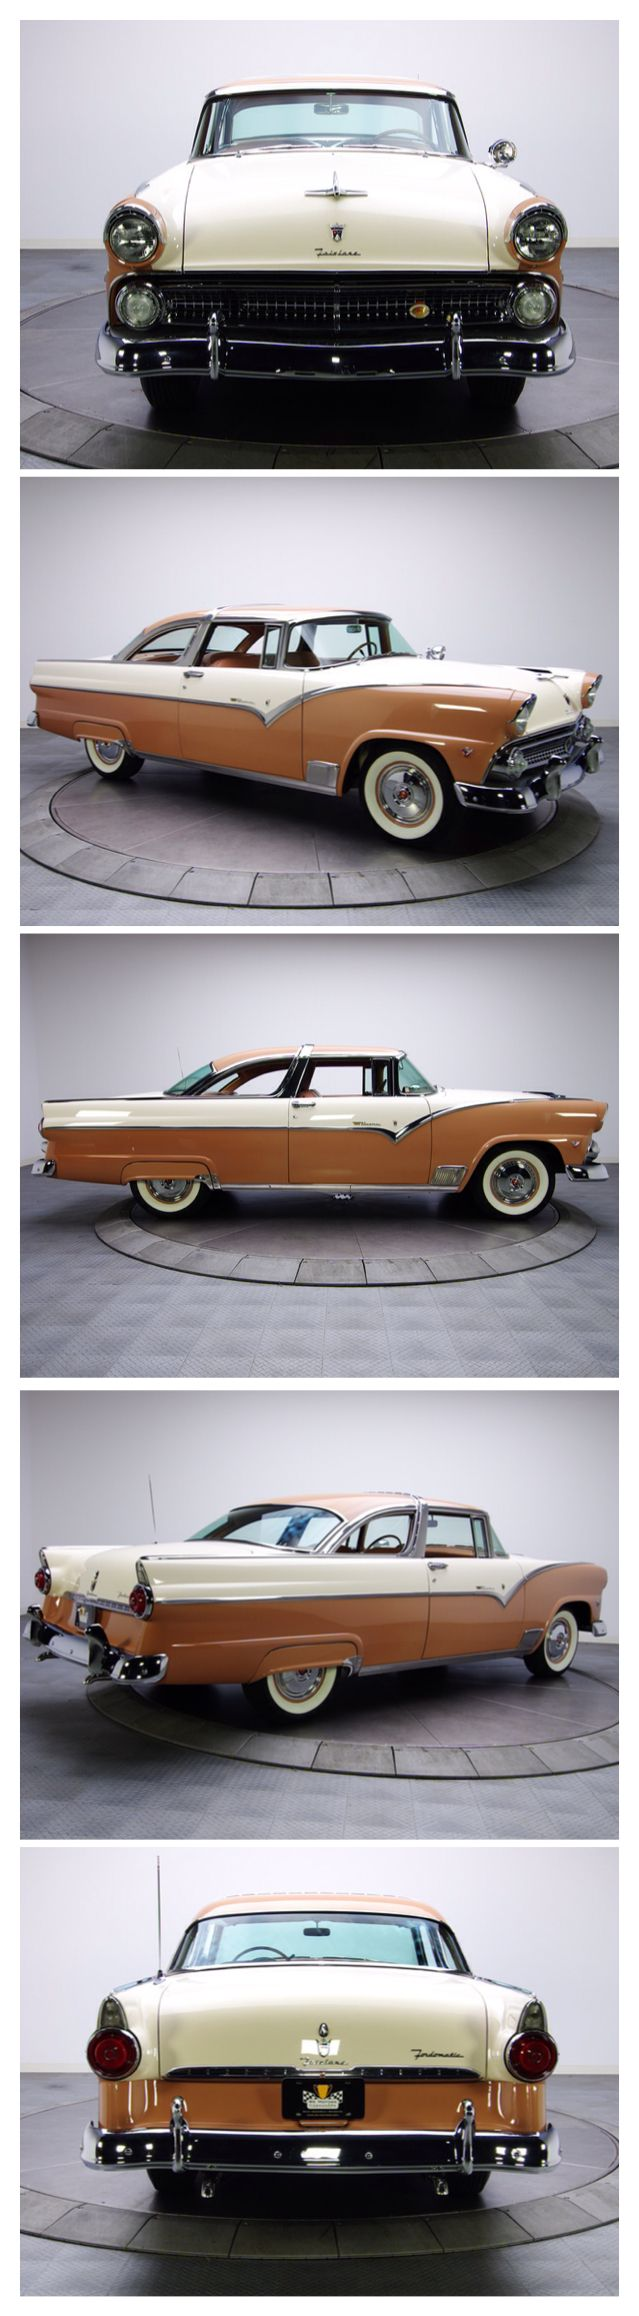 1956 Ford Crown Victoria...Brought to you by House of Insurance in #EugeneOregon call for a free price  comparison 541-345-4191.